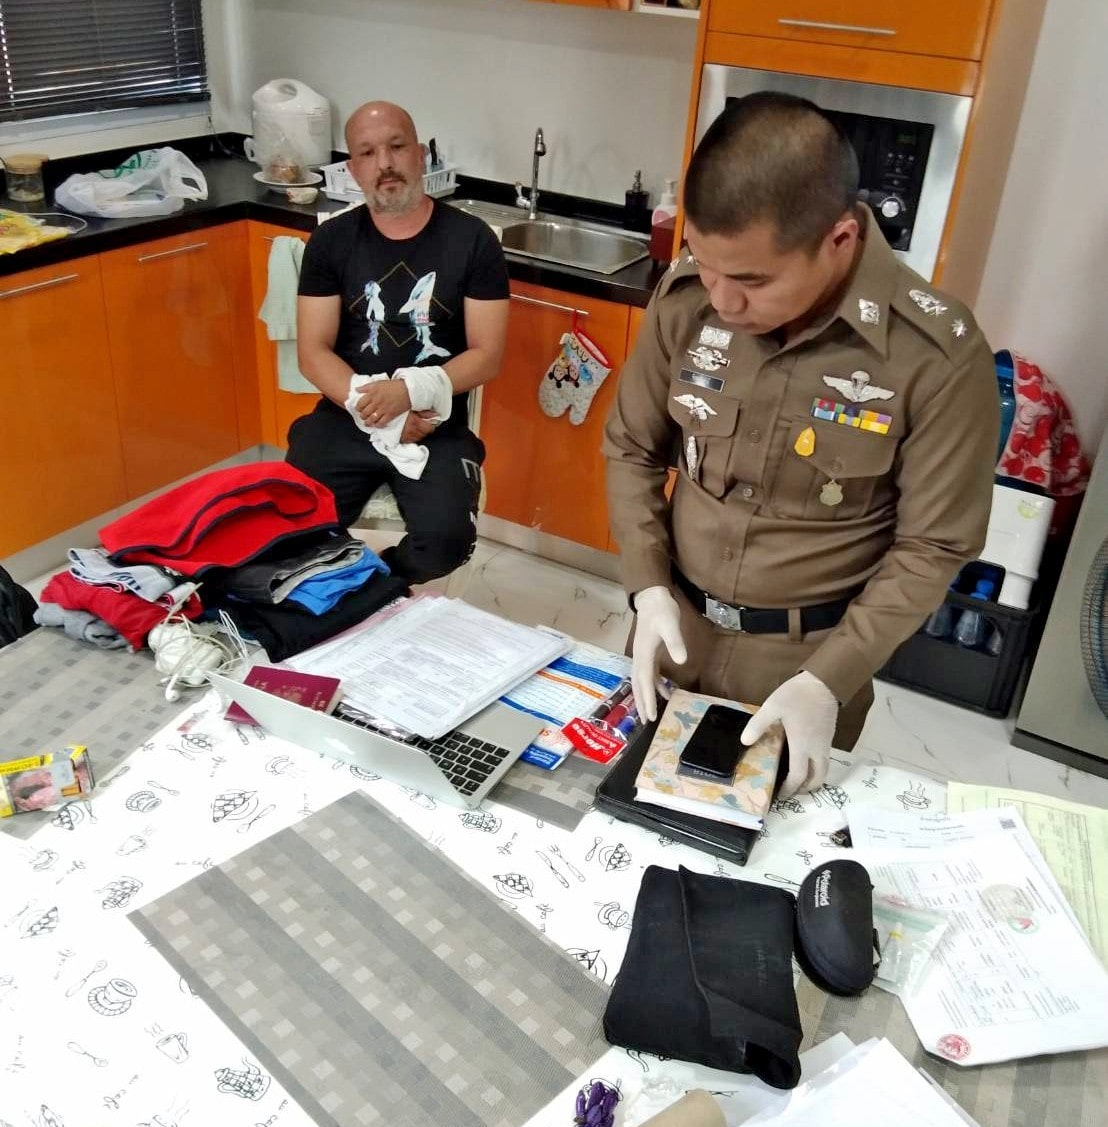 Chiang Mai: Spanish man arrested in Lampang over UK cocaine bust | The Thaiger